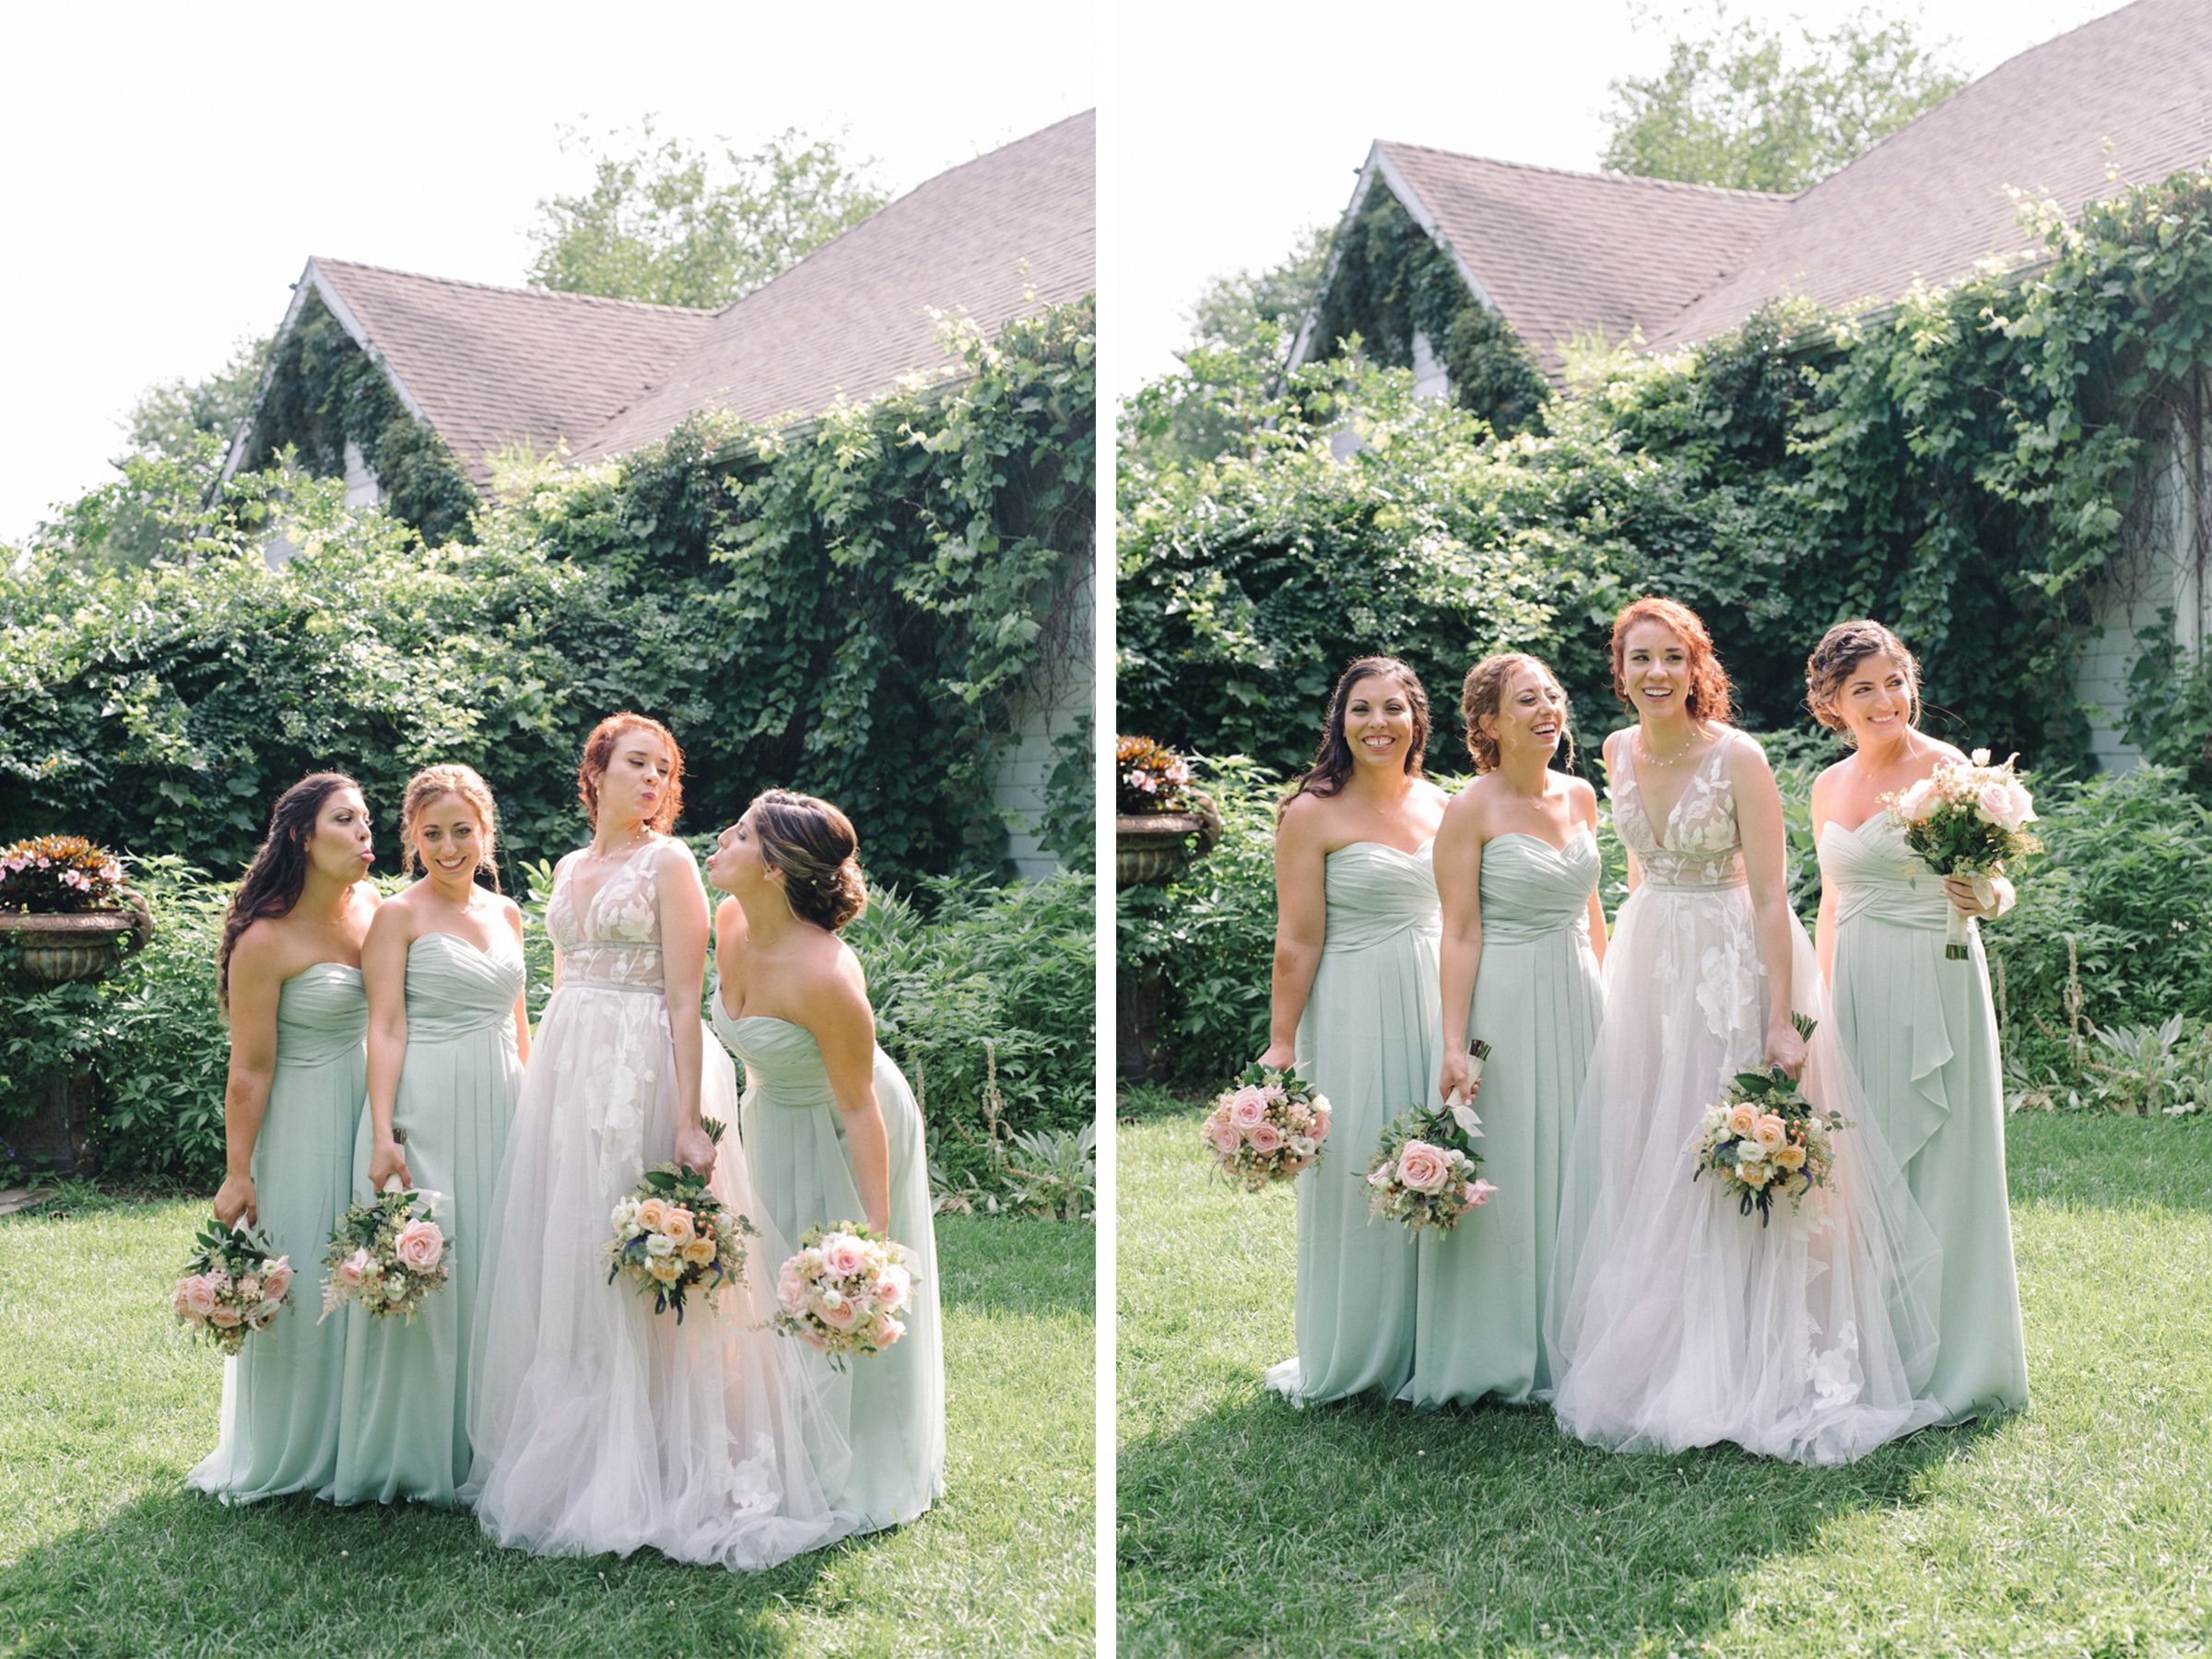 Feast at Round Hill Wedding-Kenny + Melissa- Bride and Bridesmaid Portraits-Hudson Valley New York - Olivia Christina Photo-1.jpg